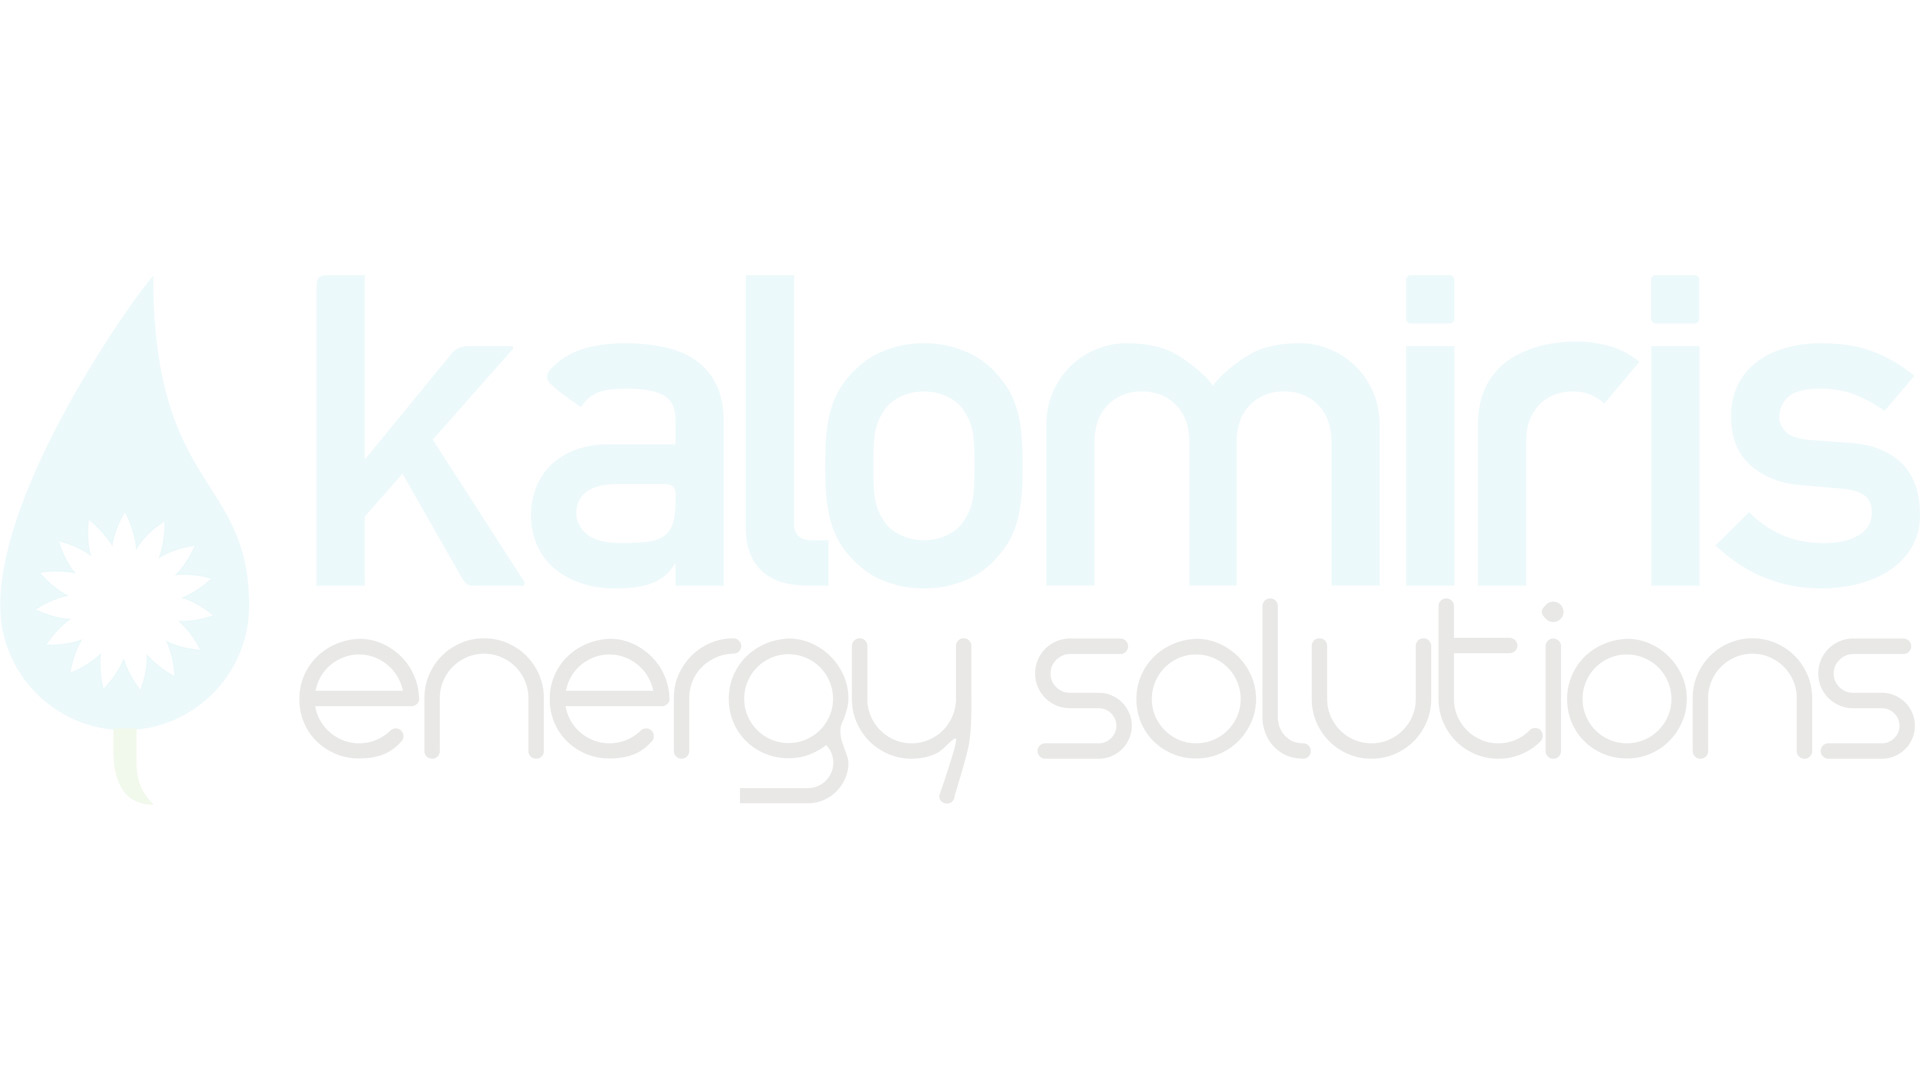 Ceiling Fan CASAFAN ECO NEO II 103 BN Beech / Maple & Light KIT 40.5 (103cm)